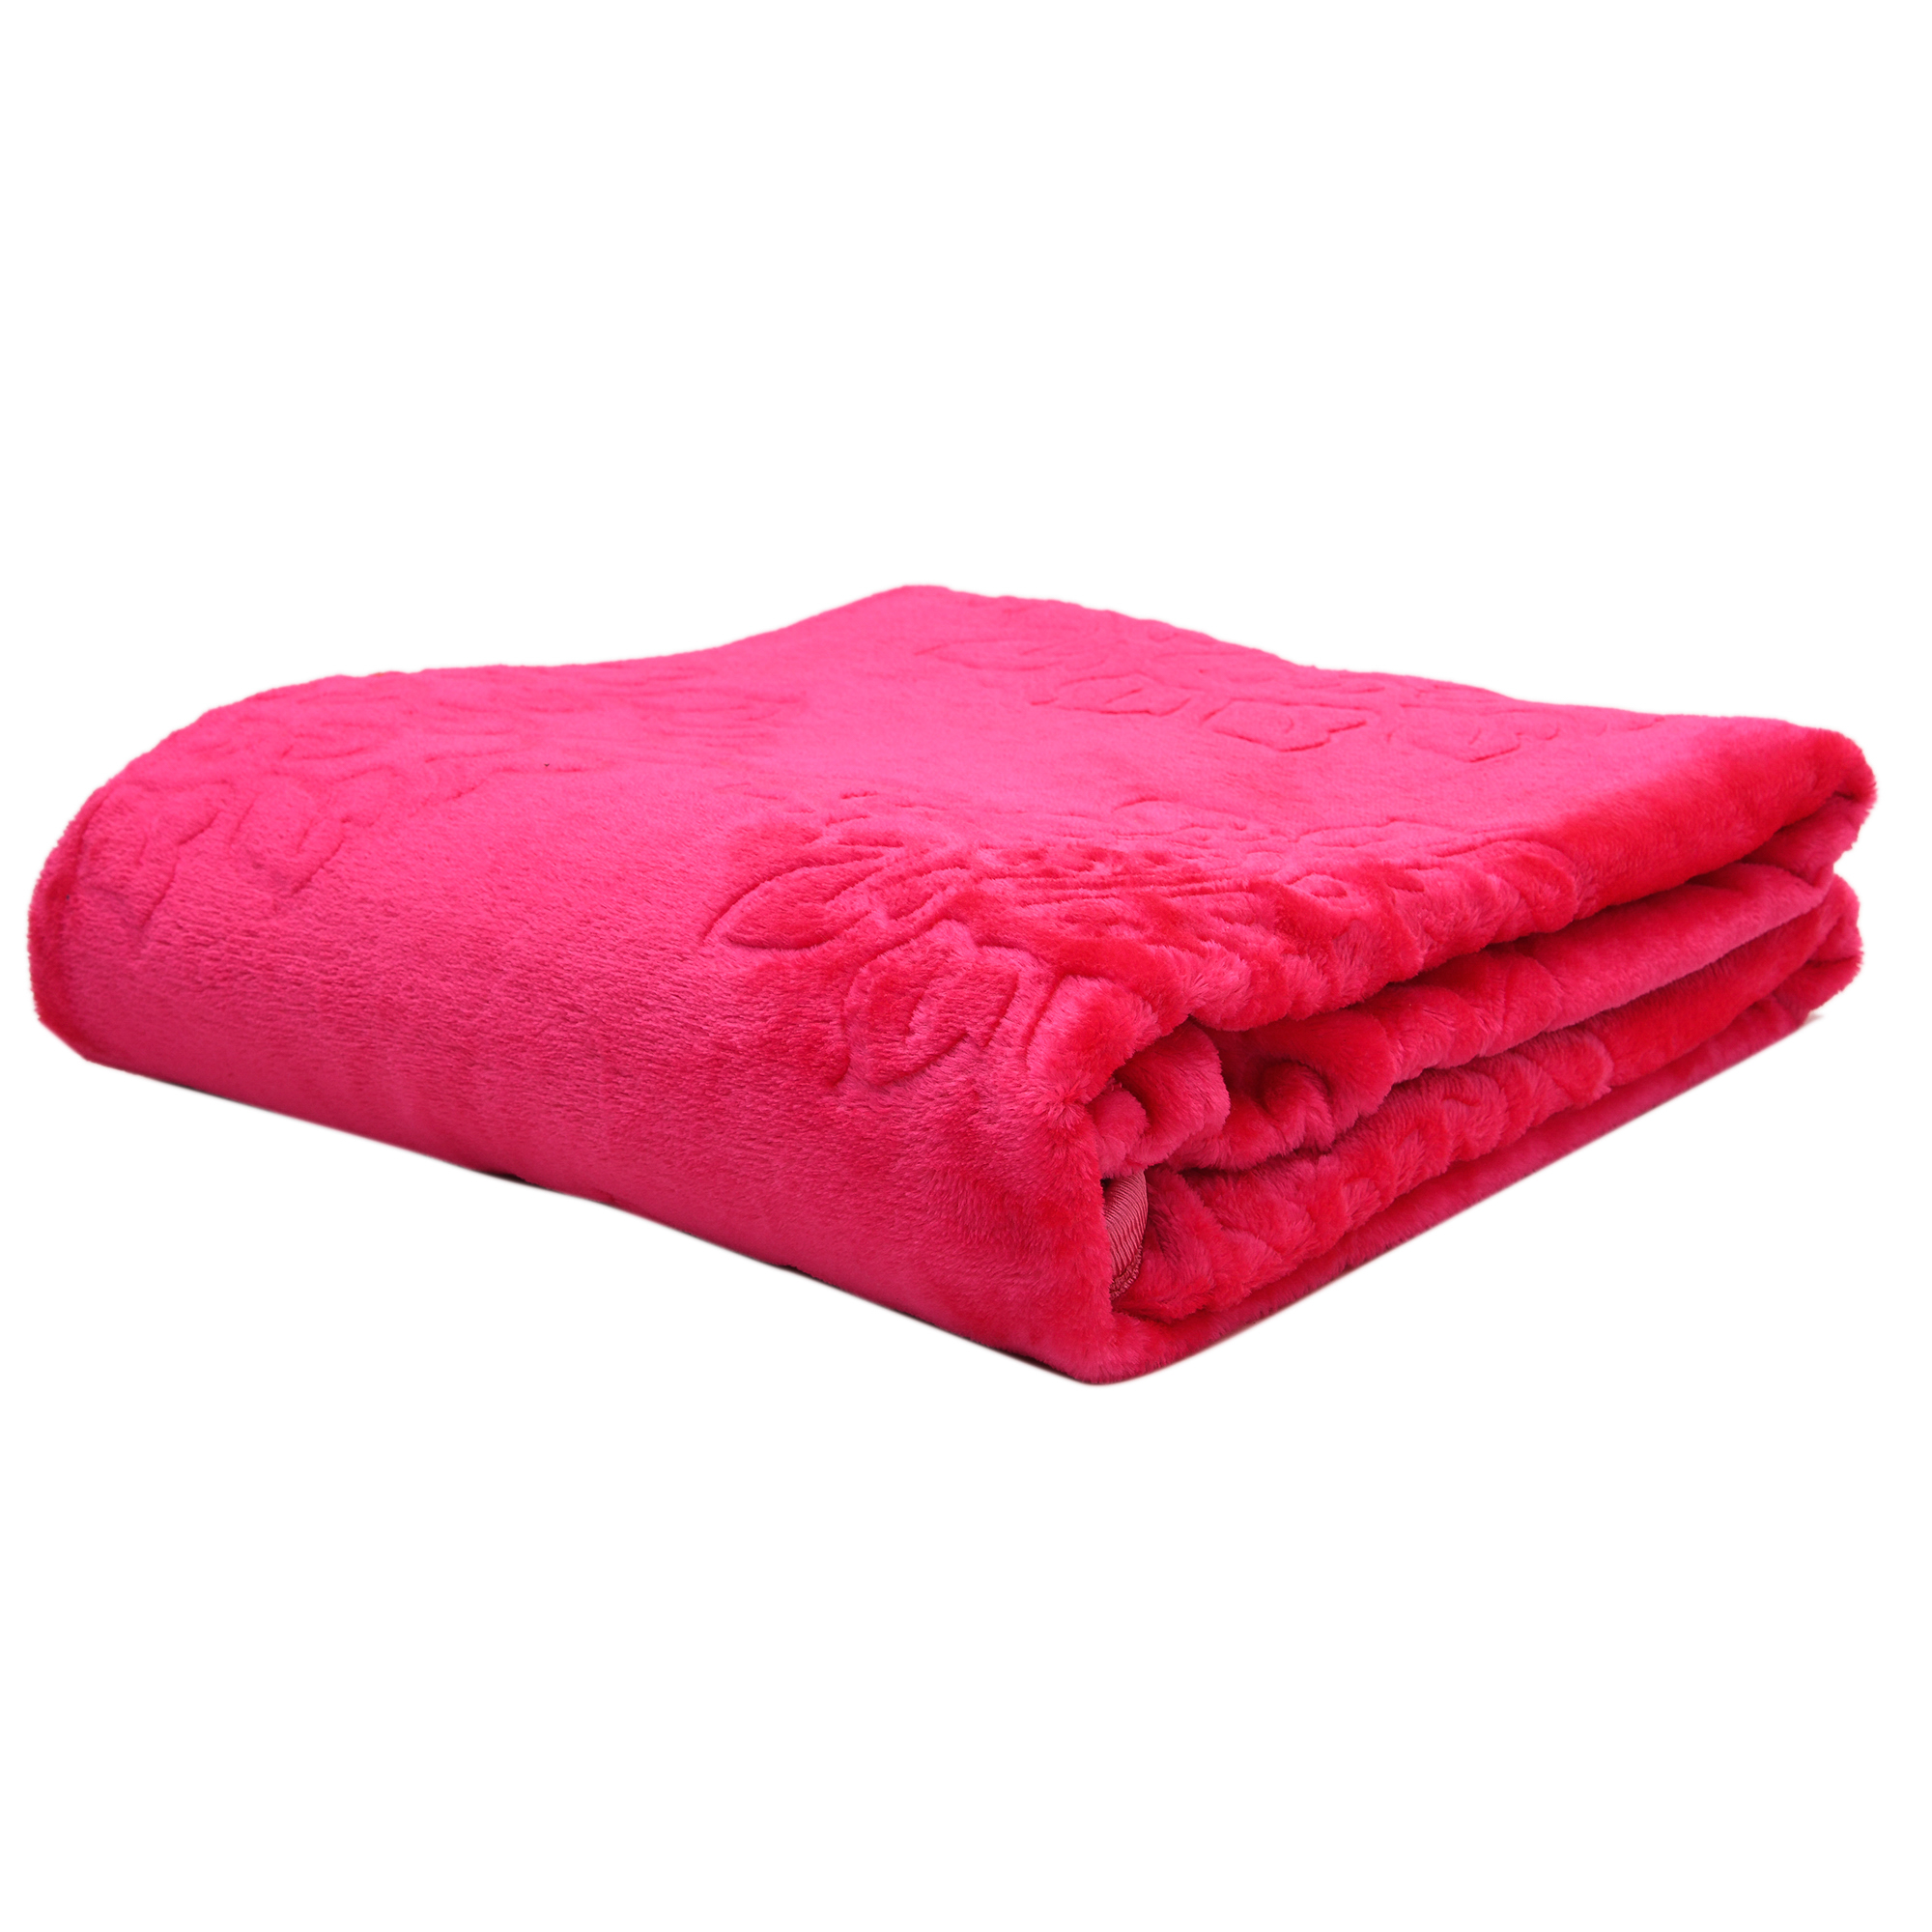 Soft Luxurious Embossed Very Warm Blankets Solid Colour Soft Ultra Floral Microfiber Double Bed Mink Winter Blanket 024